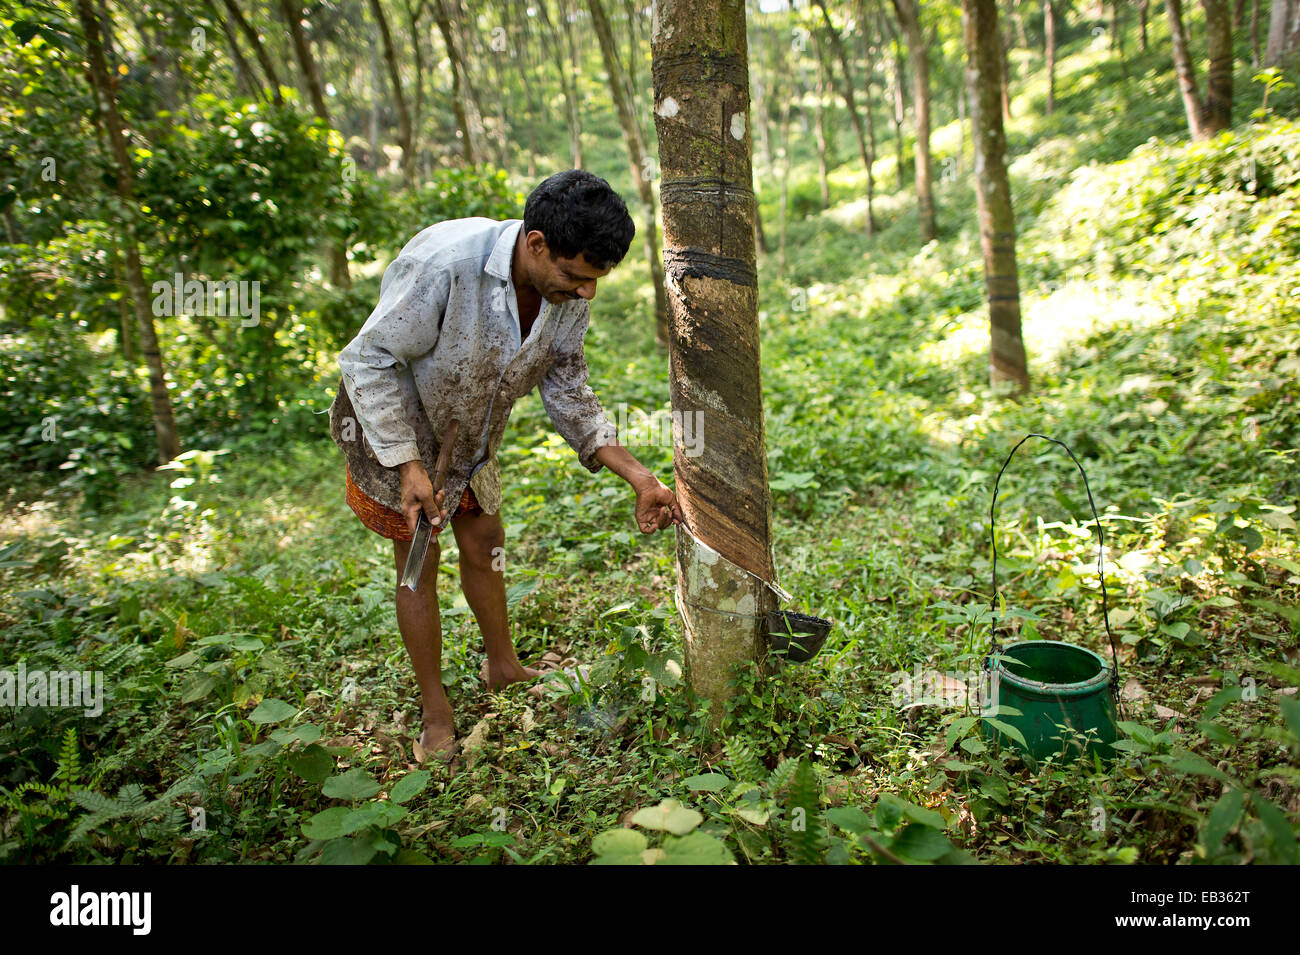 Man making an incision on a Rubber Tree (Hevea brasiliensis), on a natural rubber plantation, Peermade, Kerala, - Stock Image